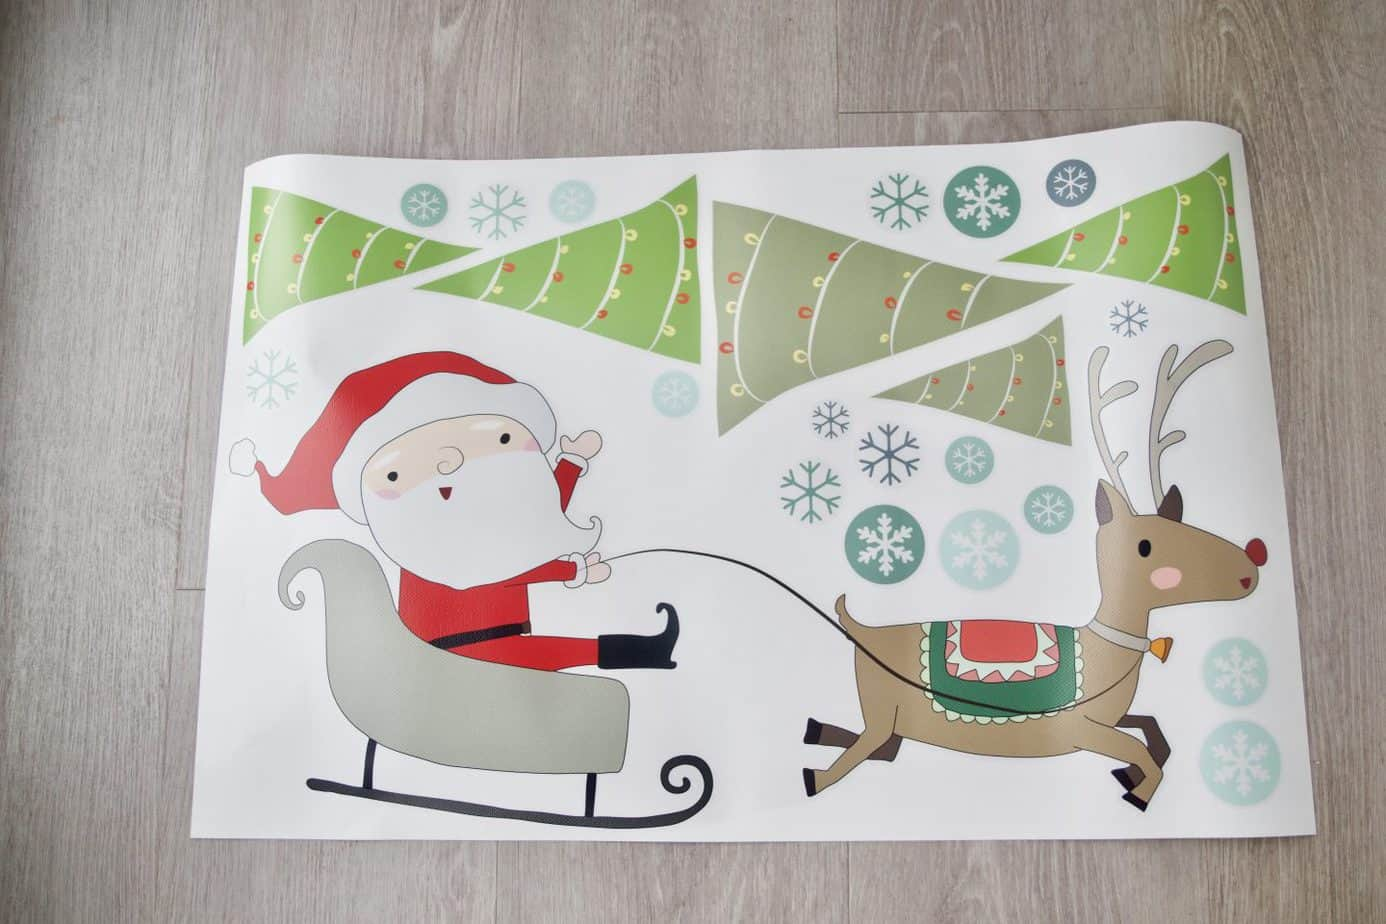 Our window stickers featuring santa on his sleigh, trees and snow flakes